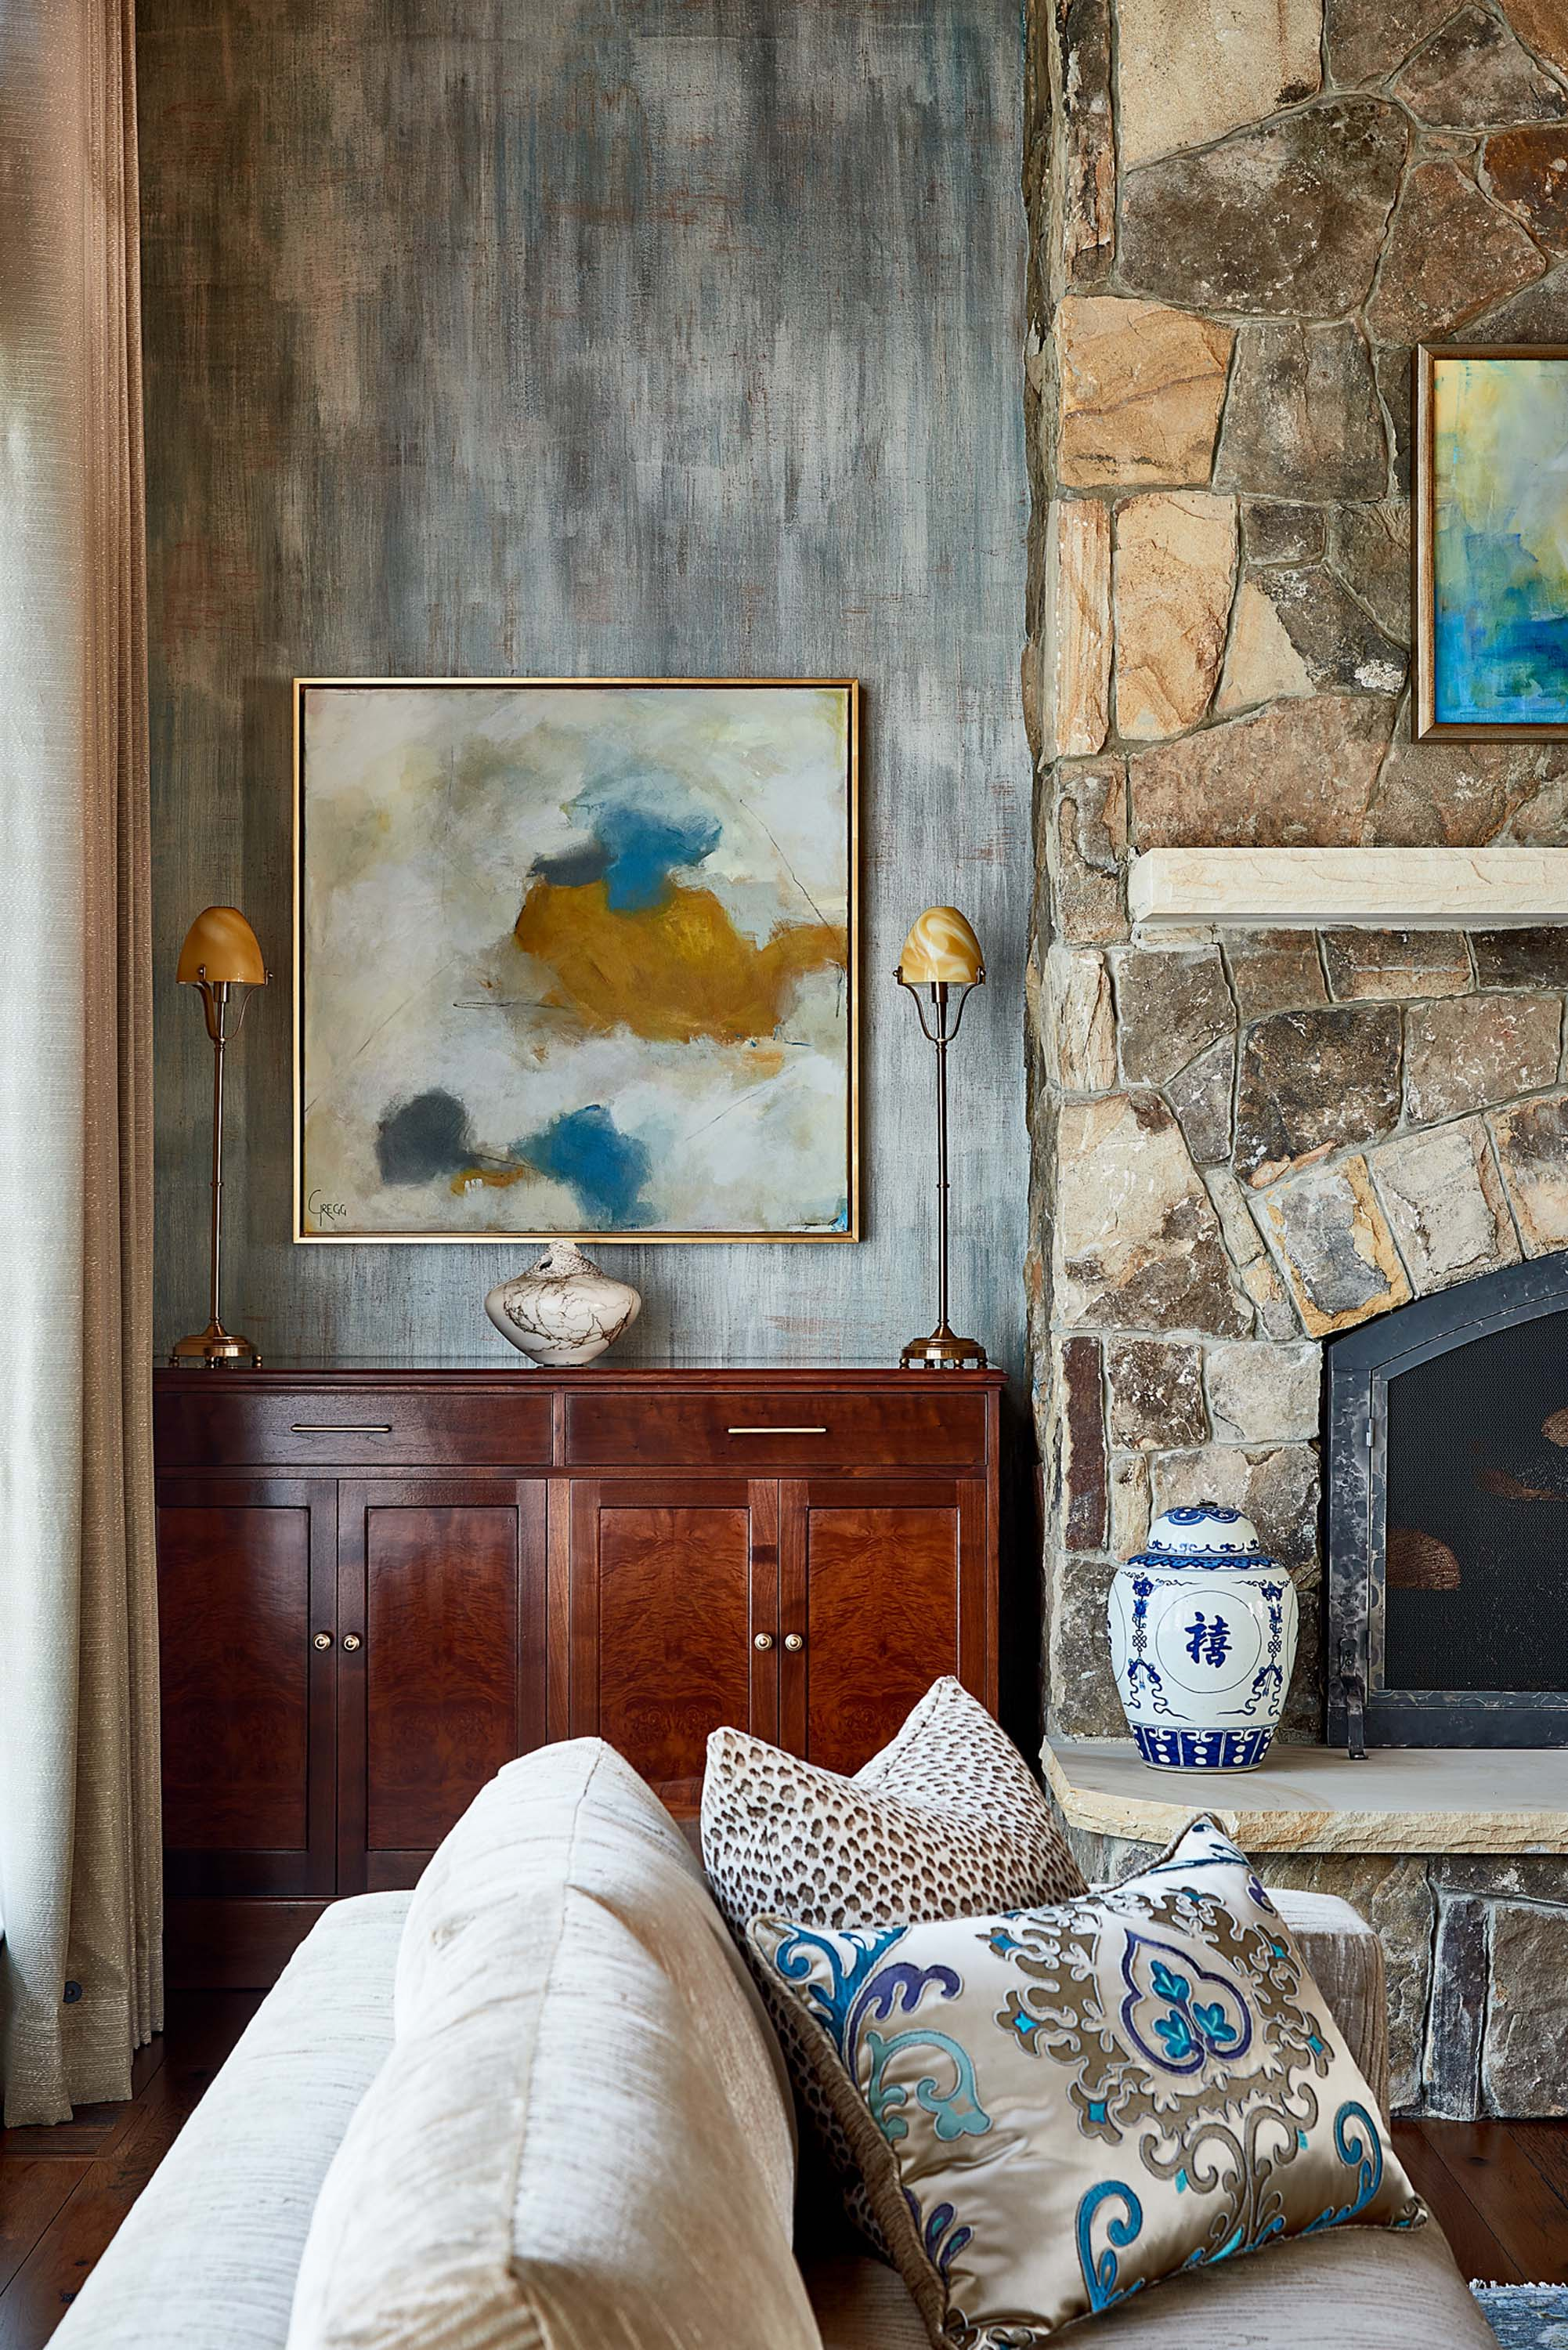 Modern art mixed with traditional interiors in blue and gold